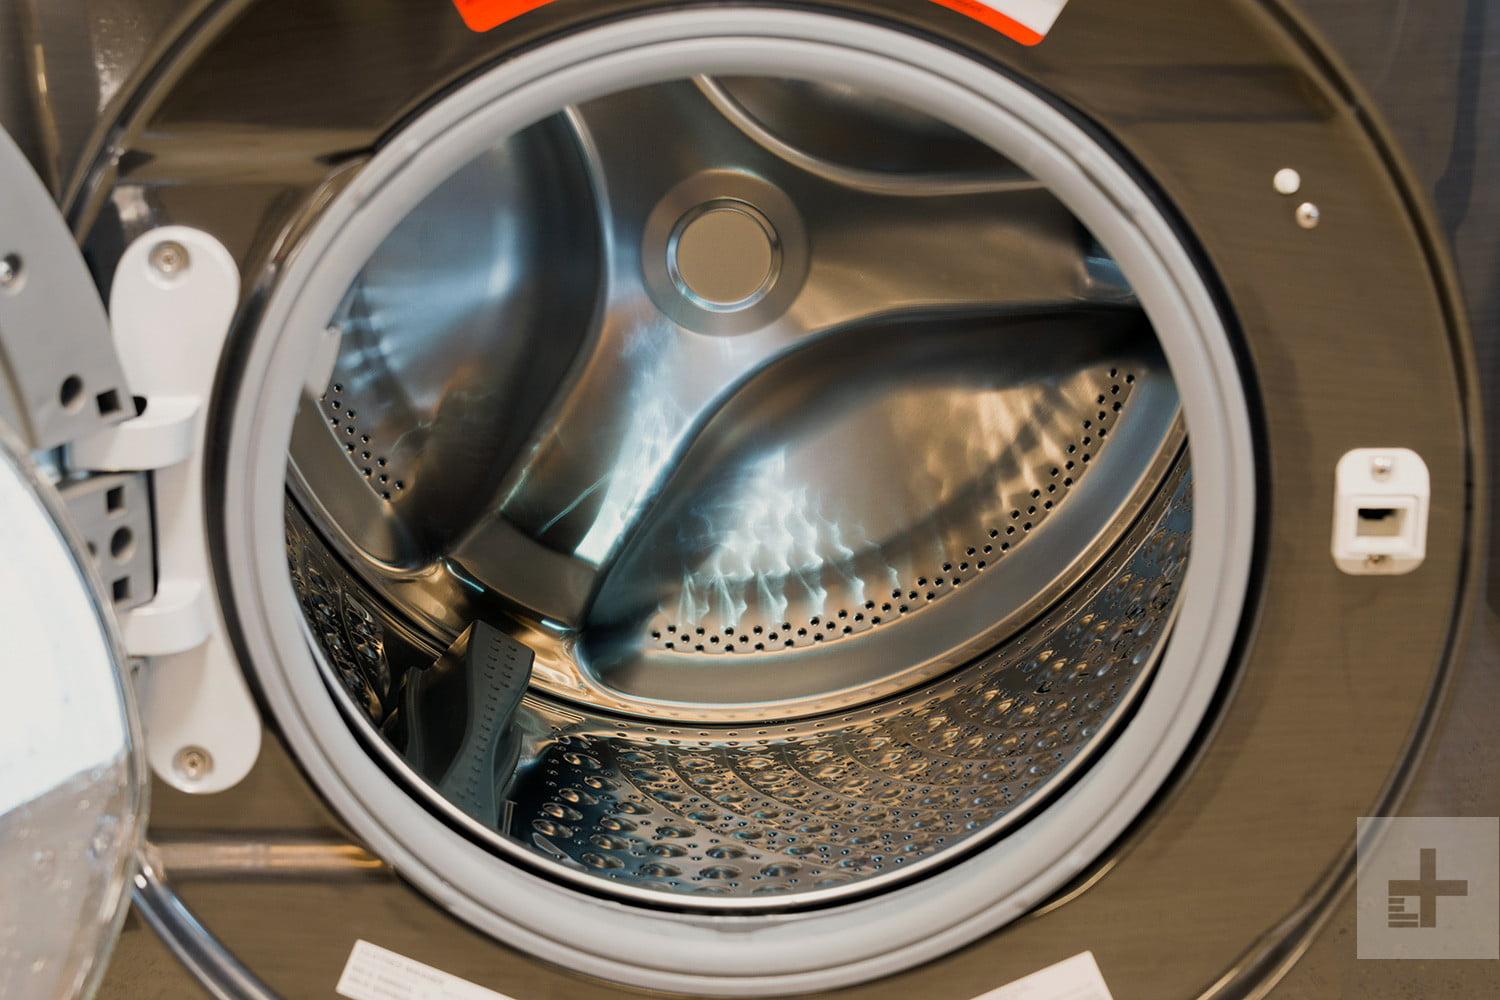 Yet Another Samsung Washer Explodes near Dallas, Texas | Digital Trends